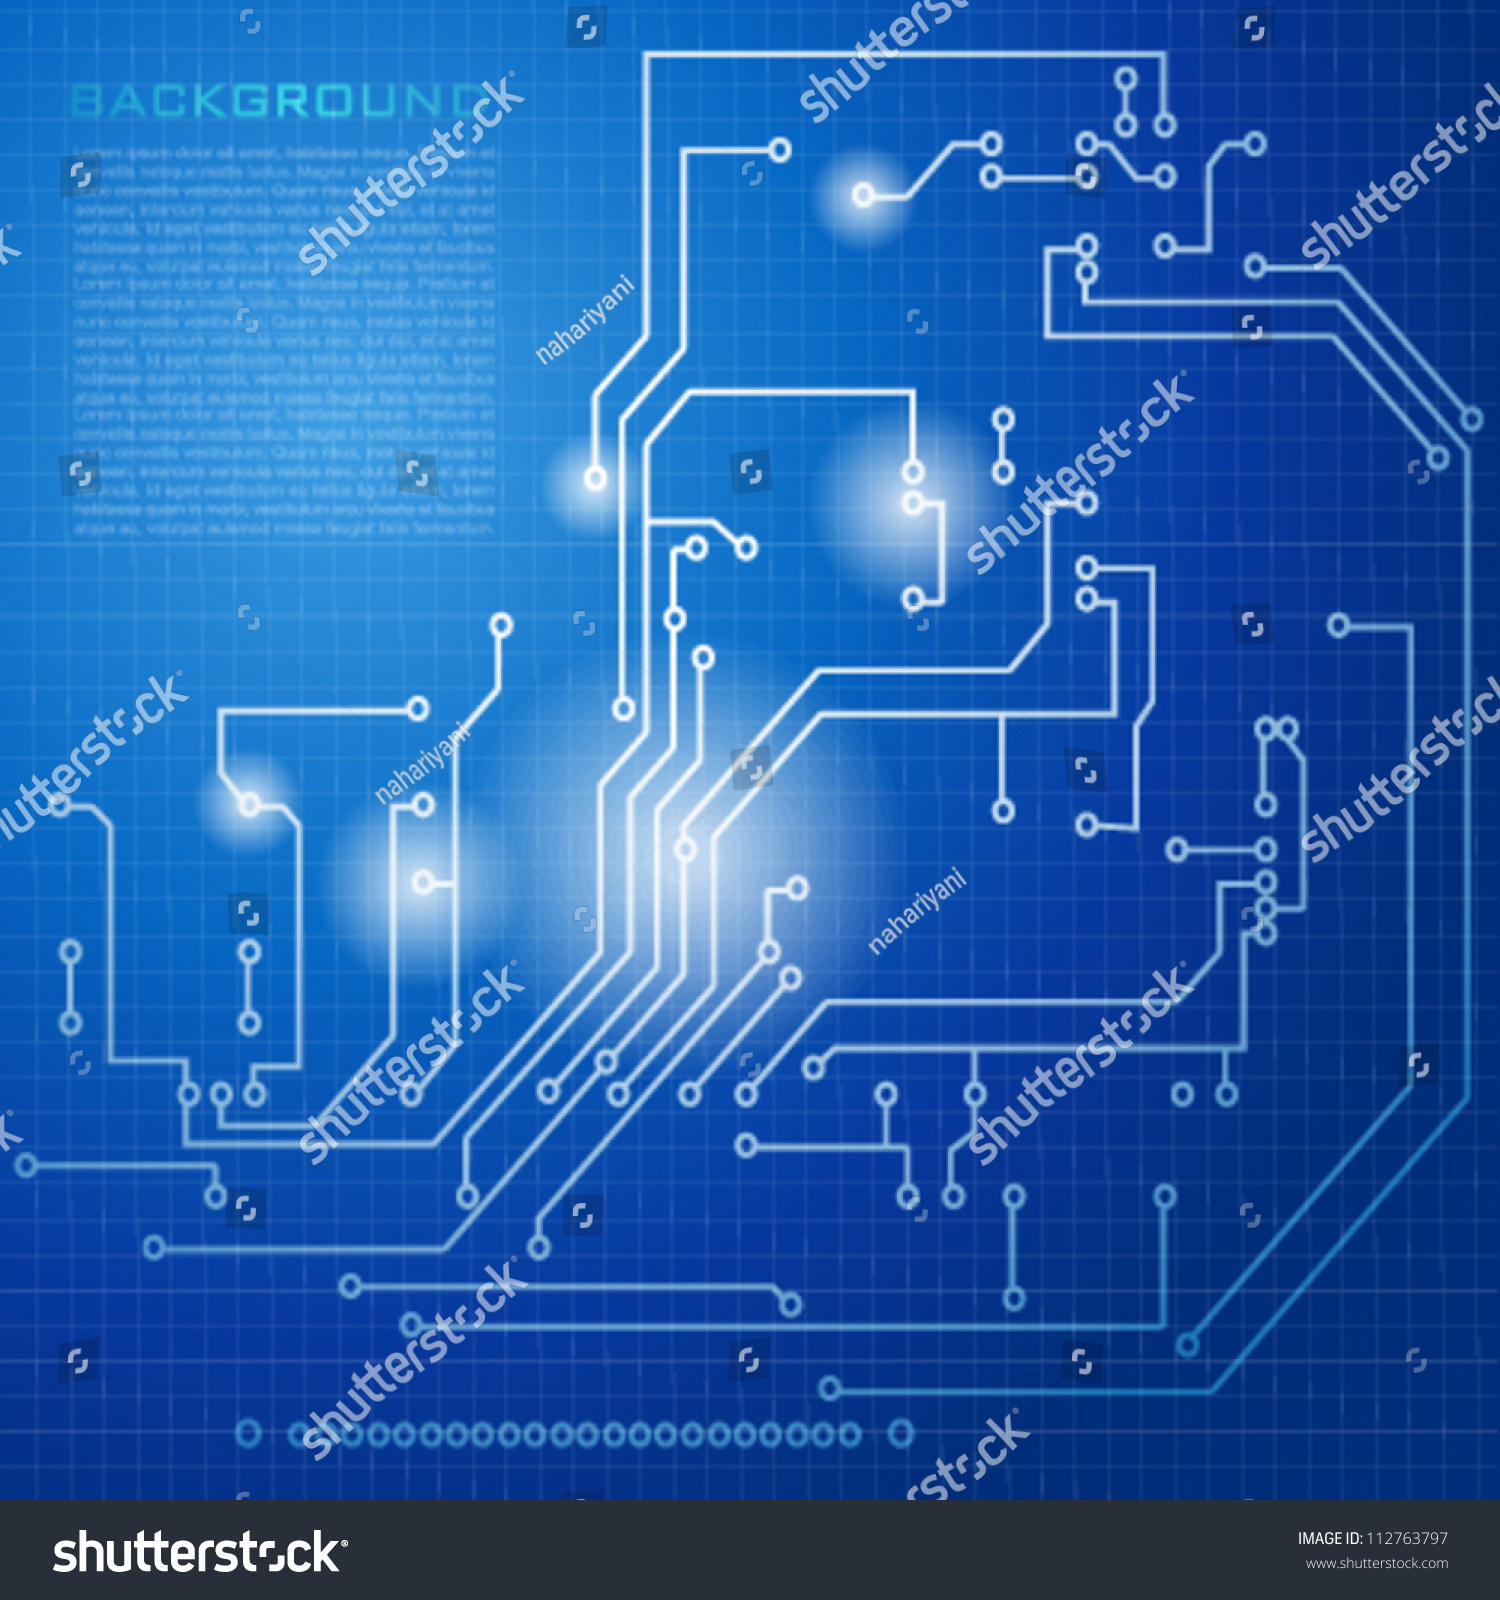 Snap Electronic Circuit Board Vector Background Stock Image 45284500 Abstract Hitech